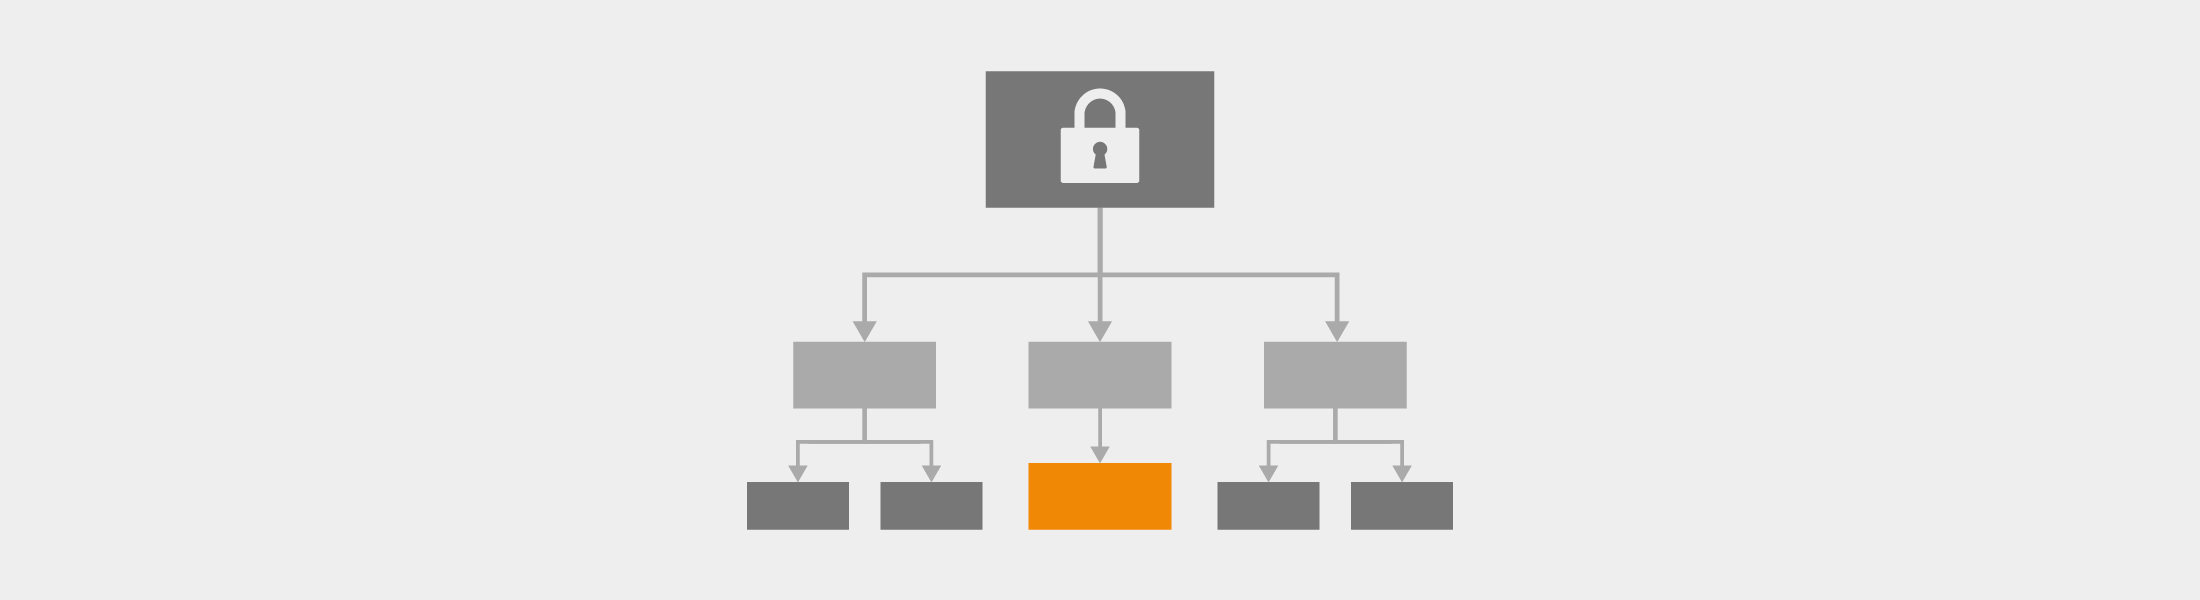 Remove sensitive information with the draw.io anonymize plugin